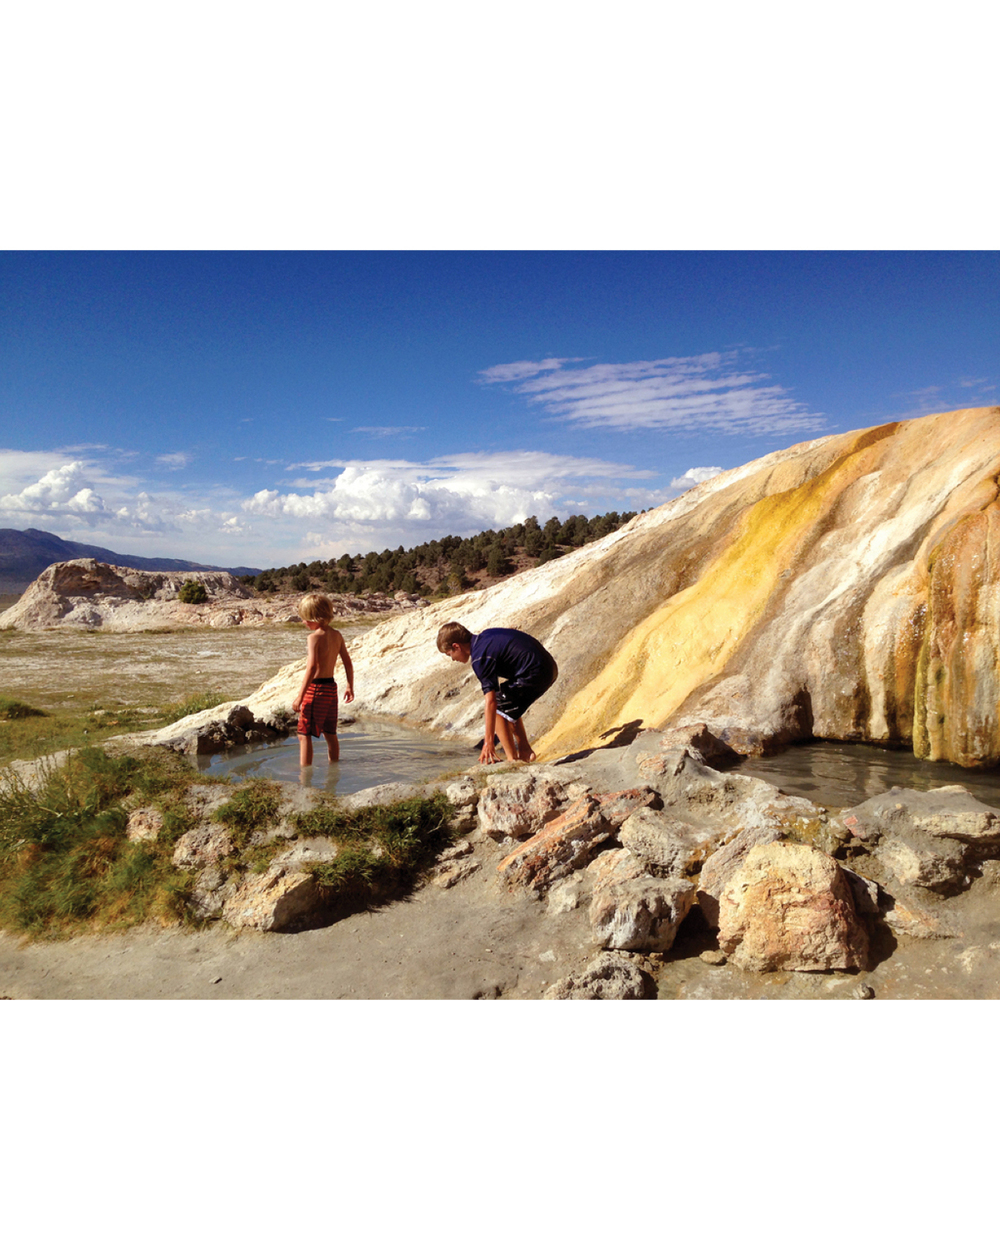 TRAVERTINE HOT SPRINGS OUTSIDE OF BRIDGEPORT